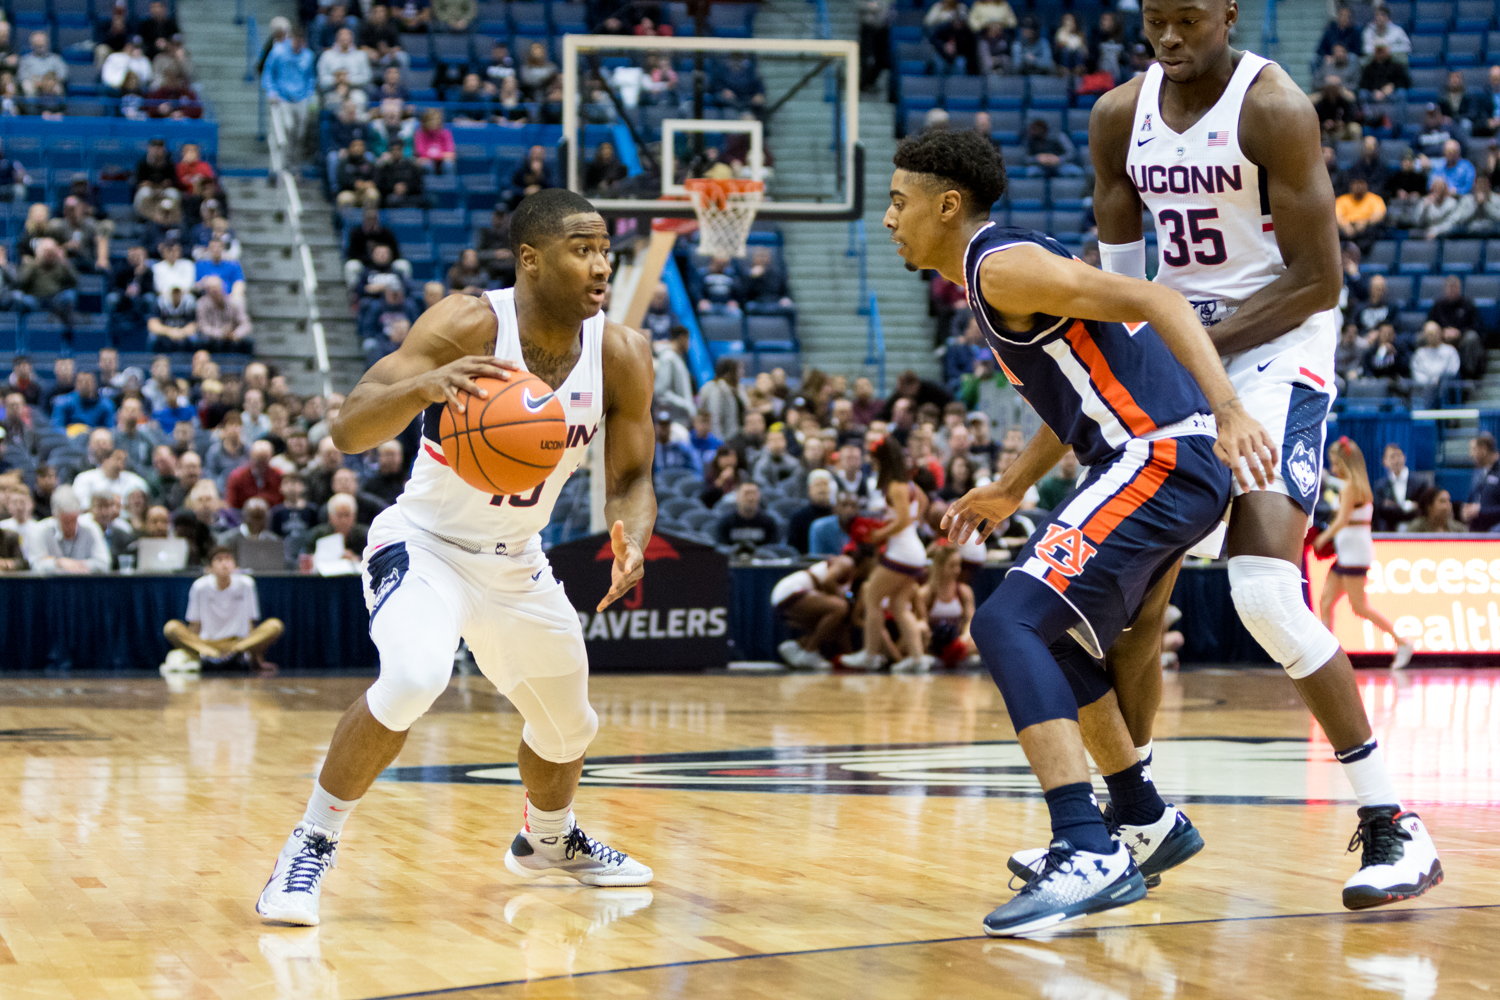 Rodney Purvis battles an Auburn defender with the help of Amida Brimah (35) during the Huskies' 70-67 overtime loss on Friday, Dec. 23 at the XL Center in Hartford. UConn returns to action there on Wednesday, Dec. 28 where they begin conference play against Houston. (Jackson Haigis/The Daily Campus)